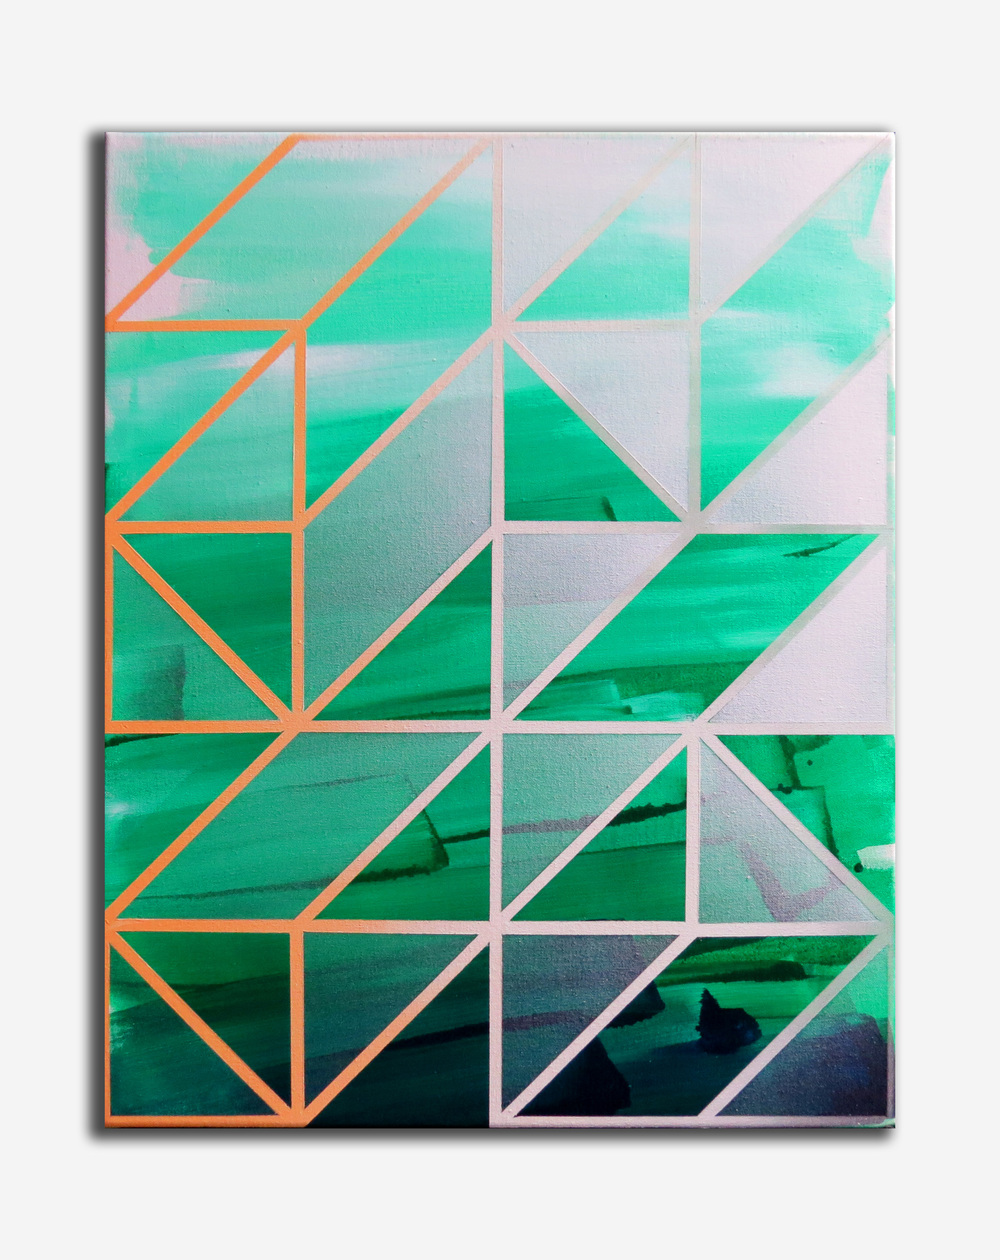 Oscillate #6, 40 x 50cm, Acrylic on canvas, 2016.jpg